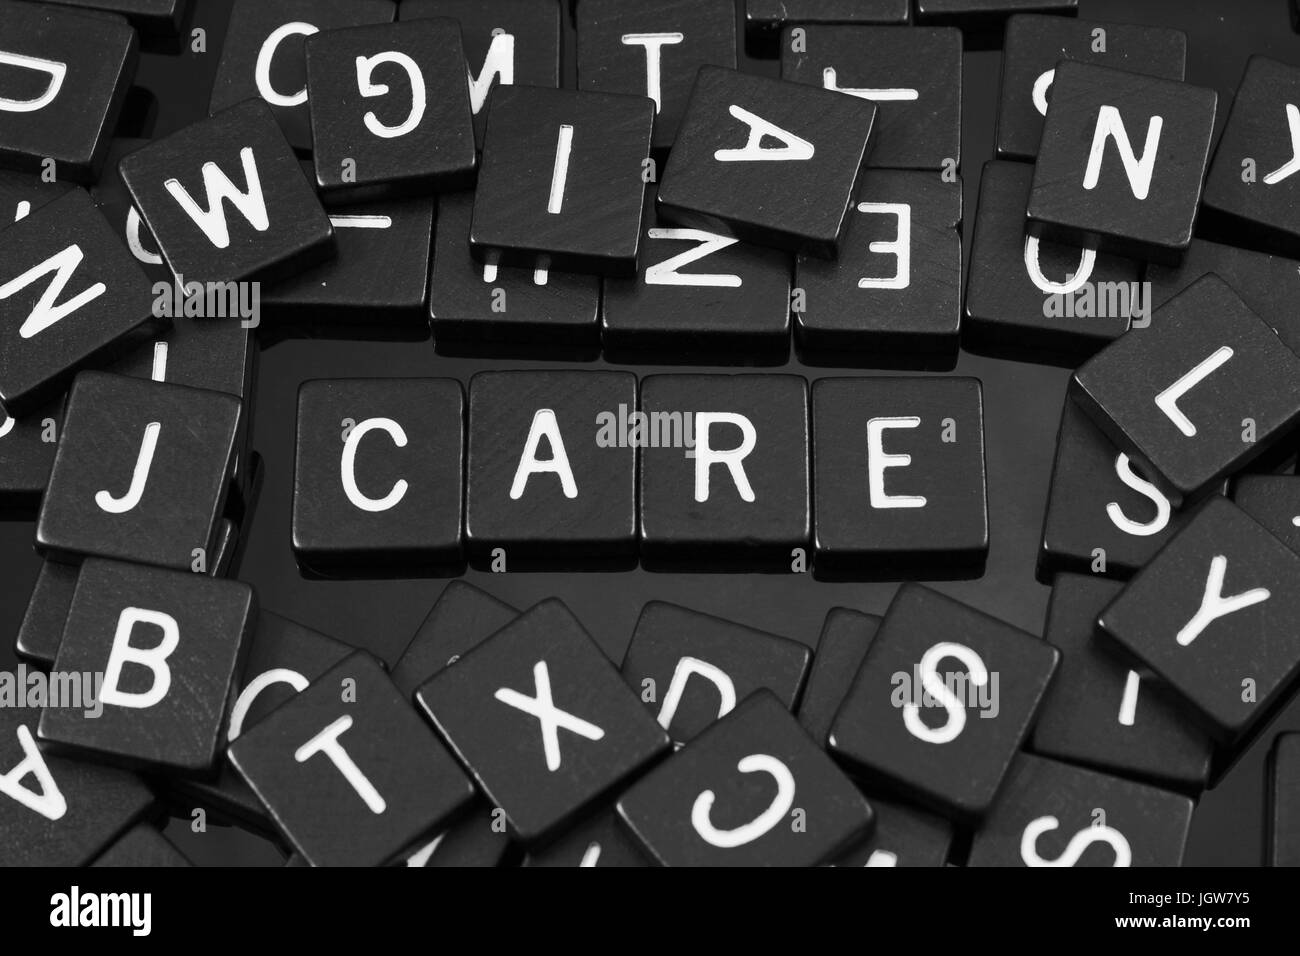 Black letter tiles spelling the word 'care' on a reflective background - Stock Image